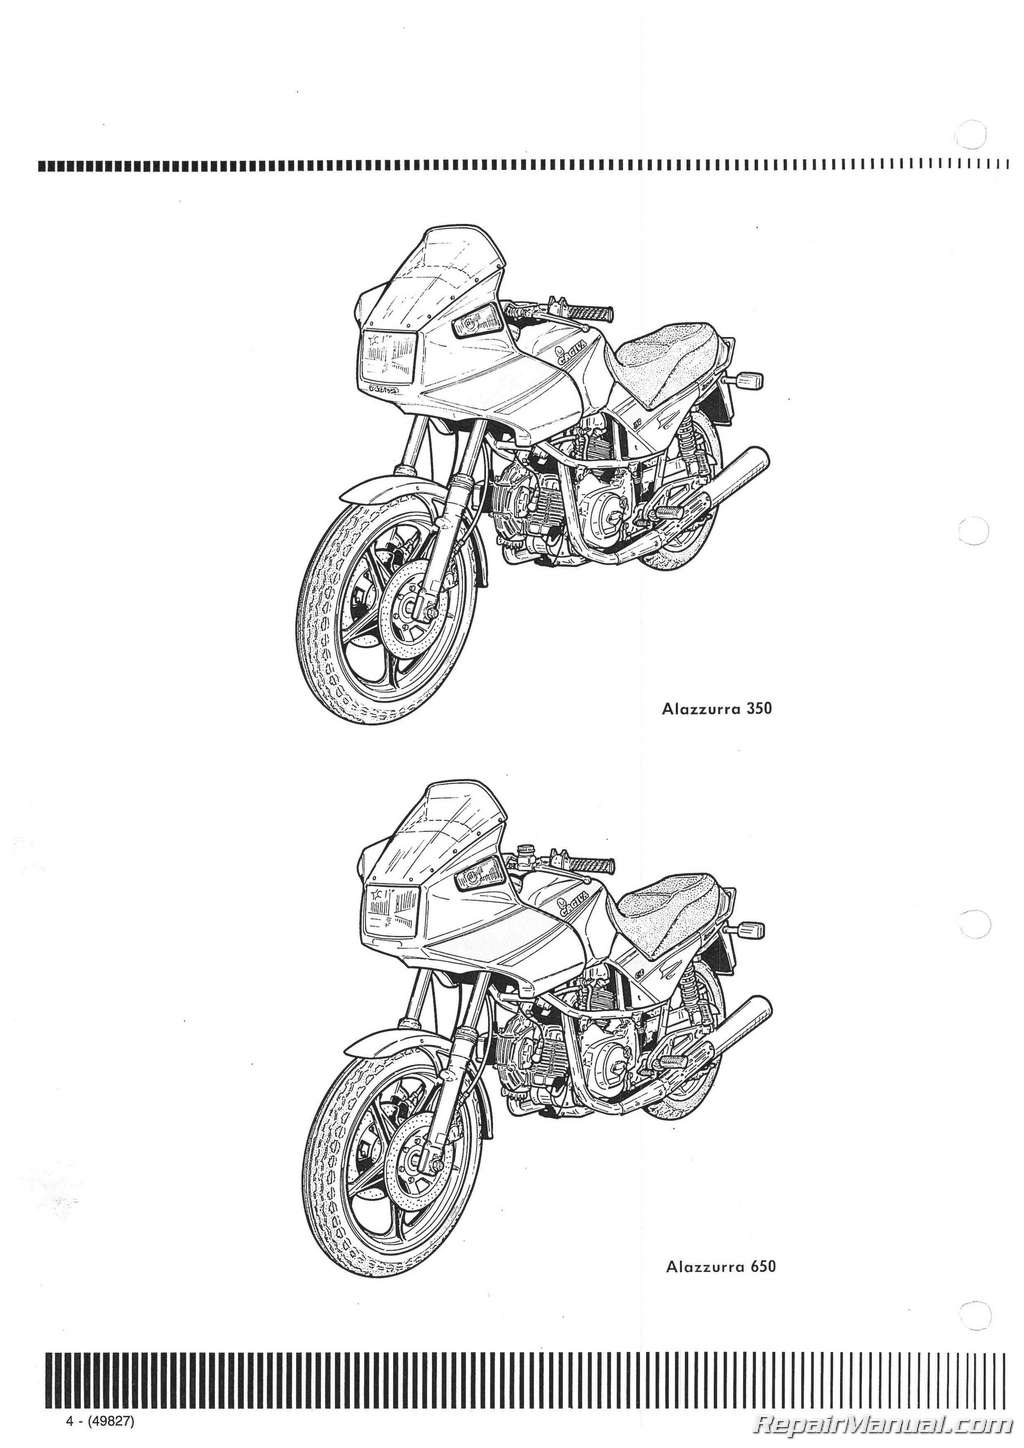 1985 1986 1987 Cagiva Alazzurra 350 650 Motorcycle Service Manual